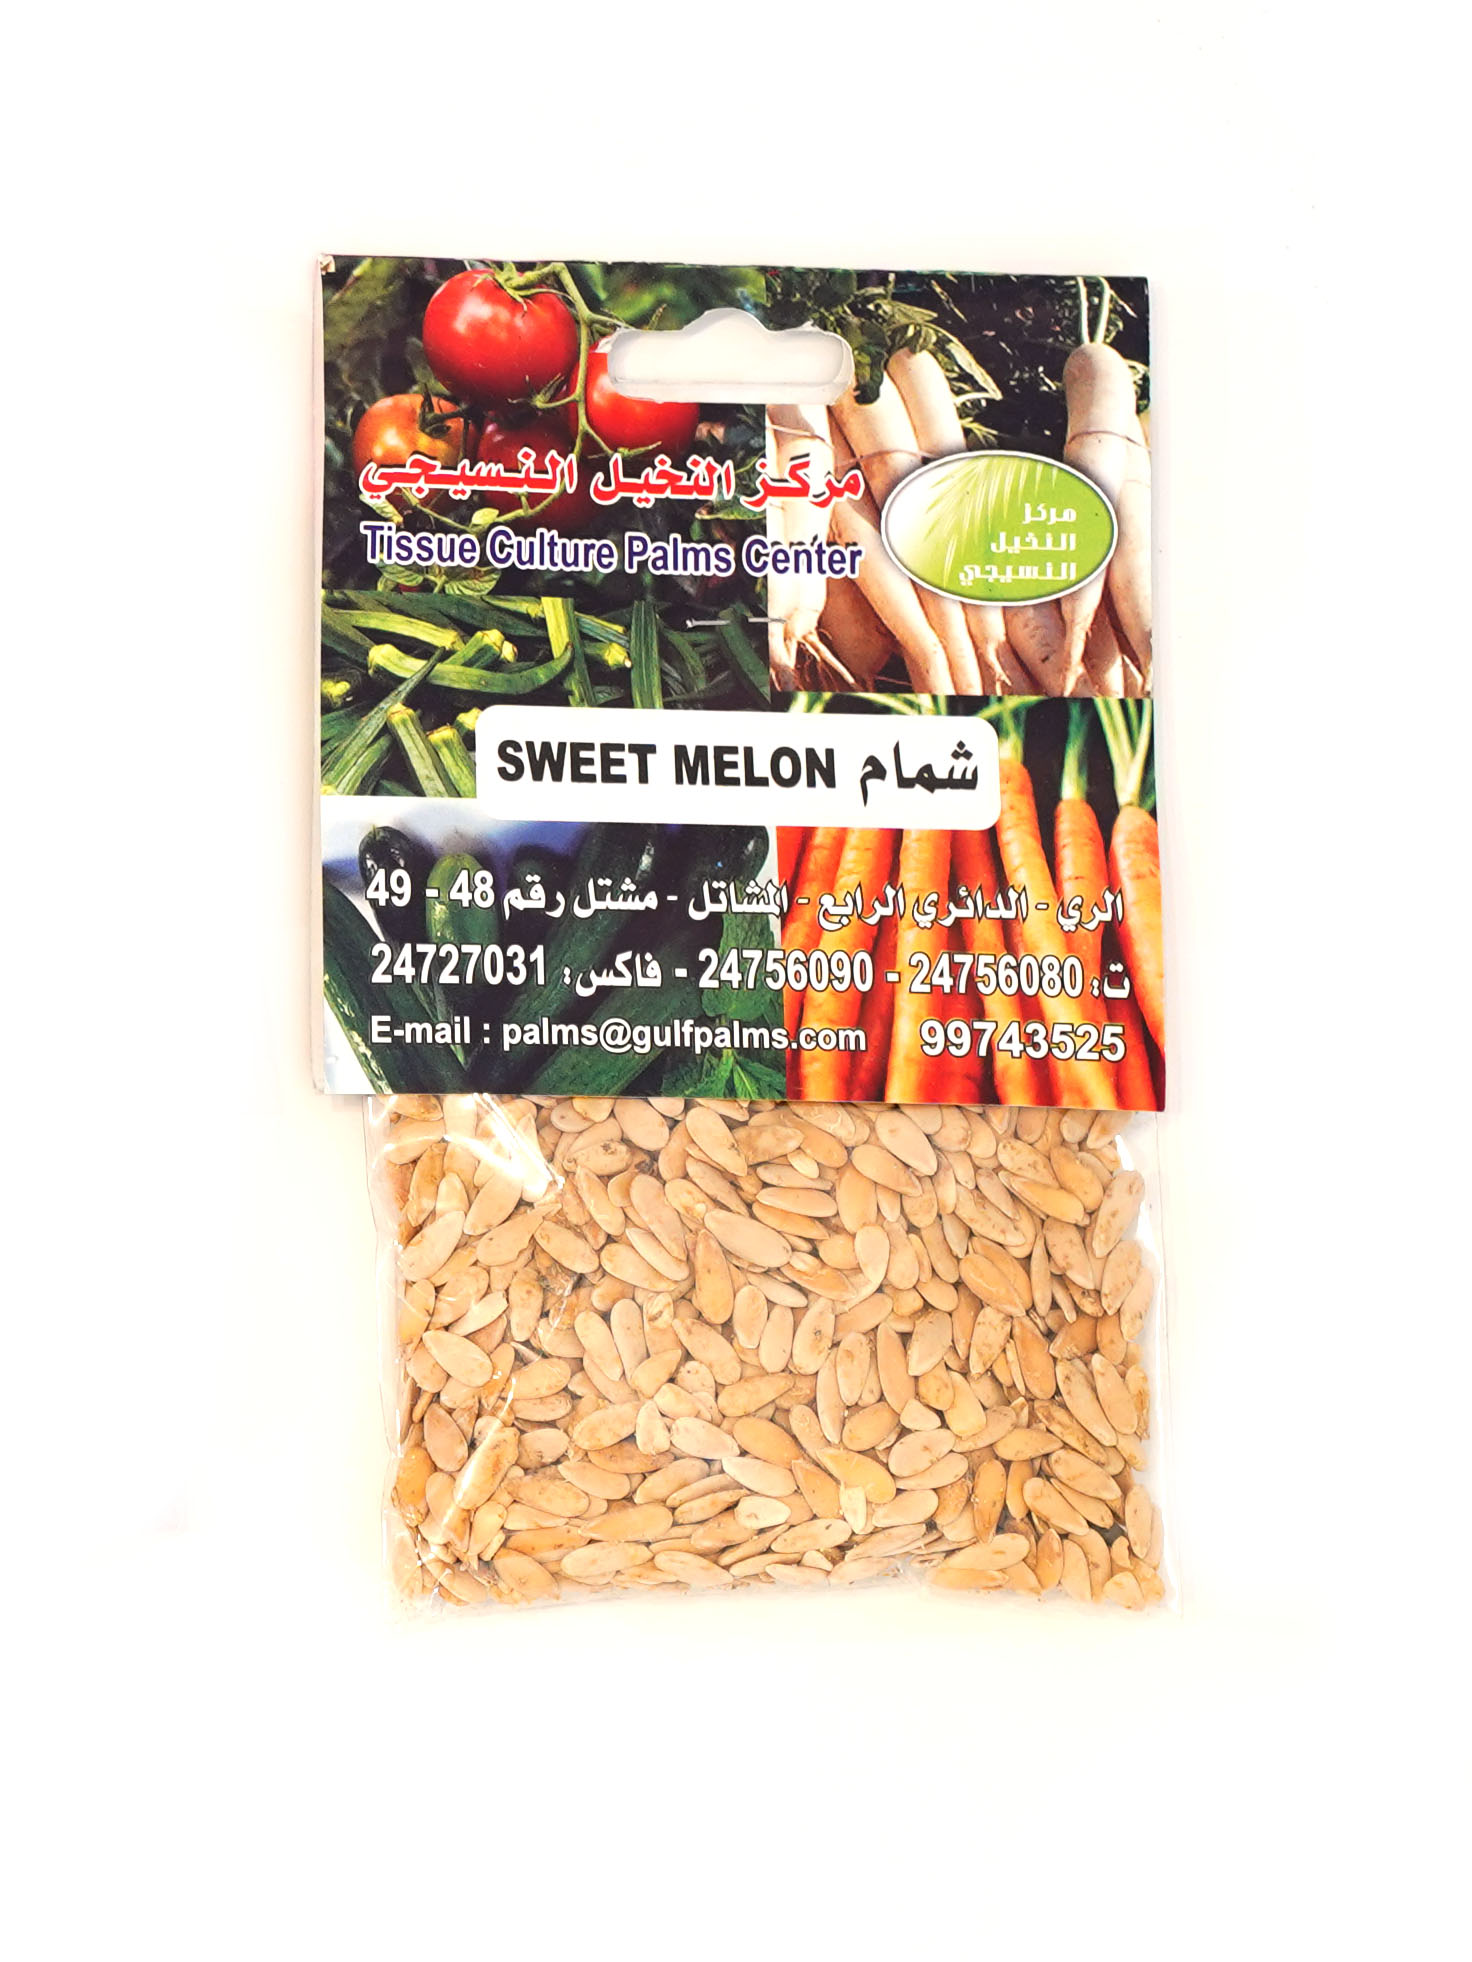 Sweet Melon Seeds Fruits and Vegetables